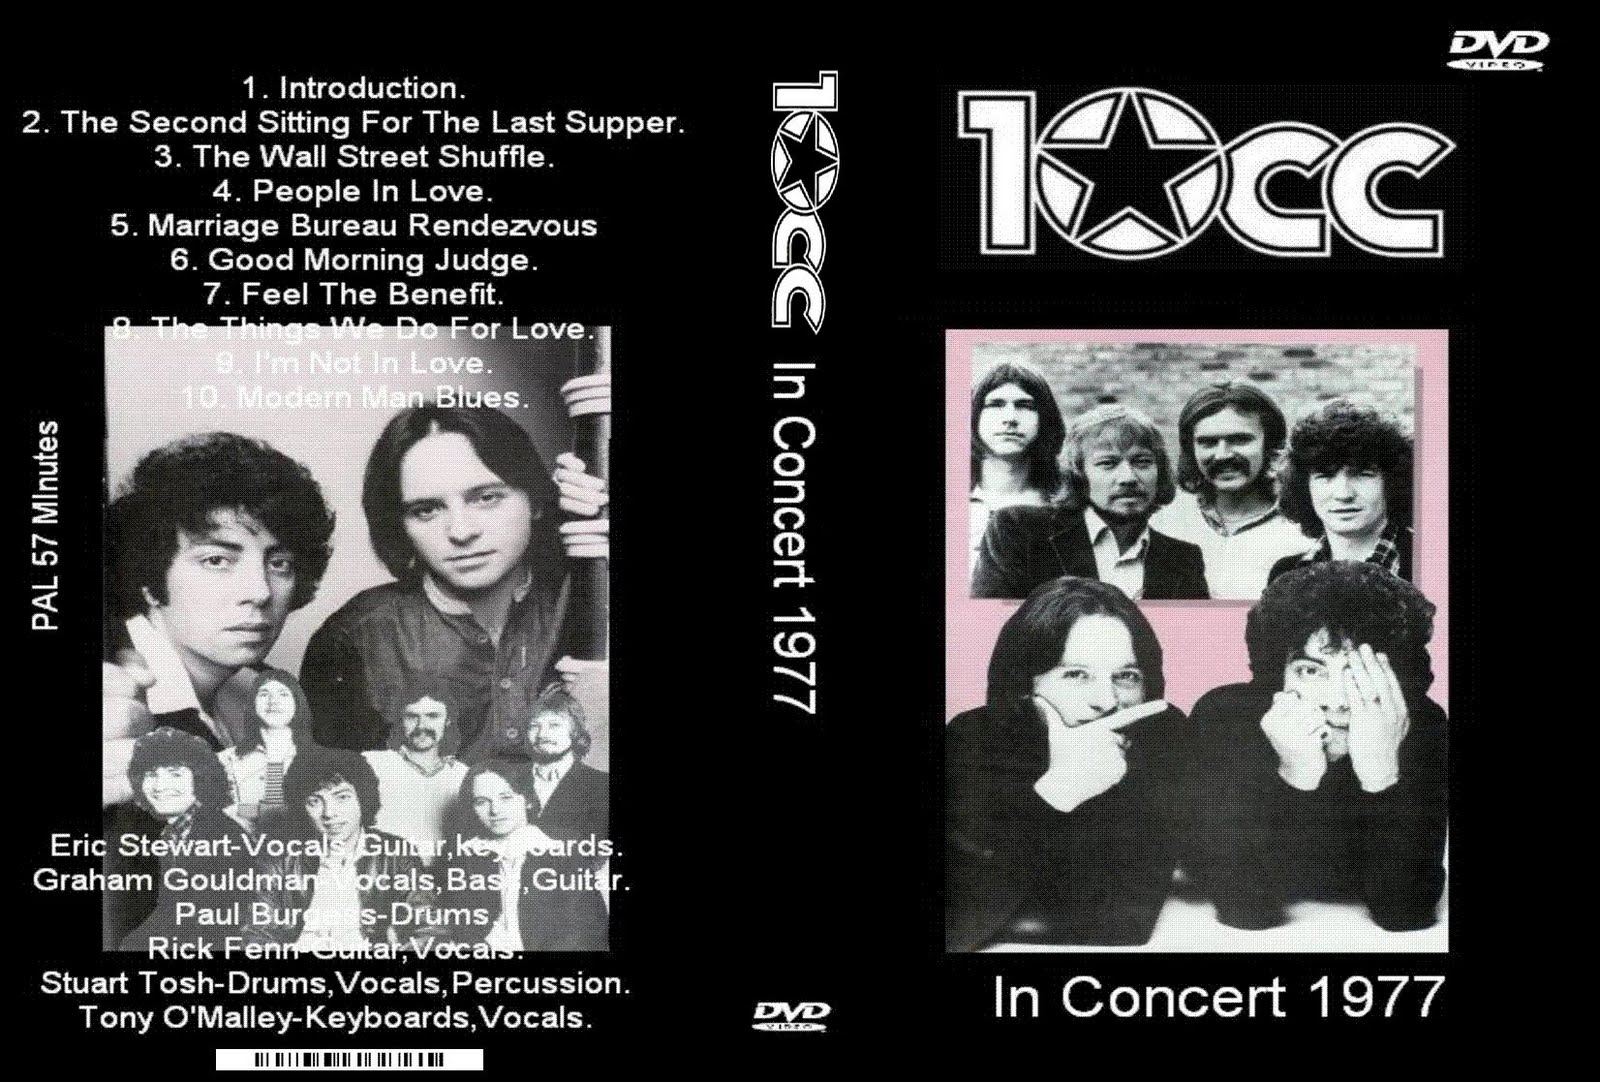 Supertramp - Queen Mary College (1977) xvid - moody